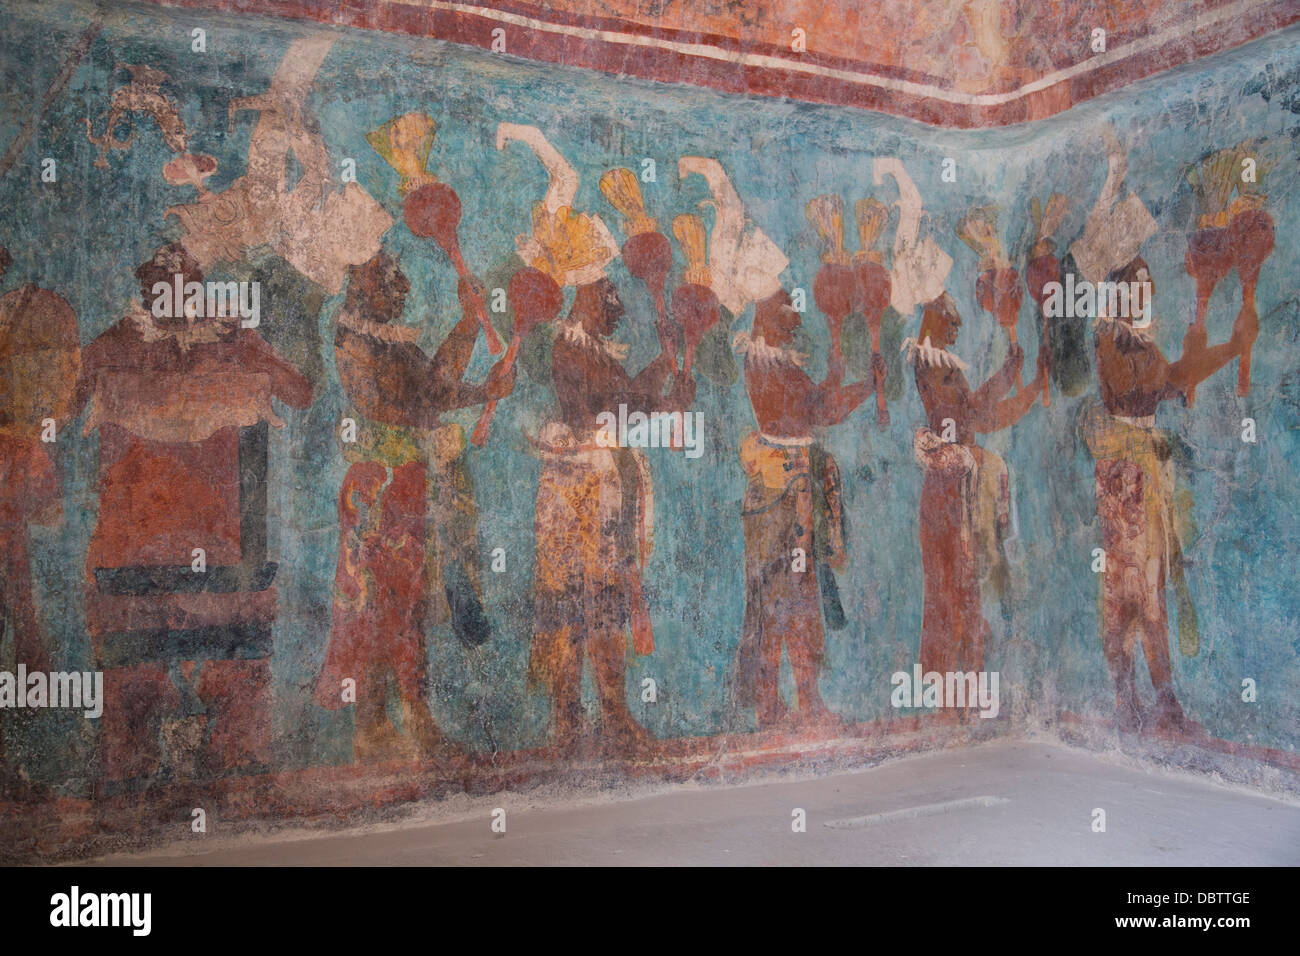 A procession of musicians in room 1 temple of murals for Bonampak mural painting